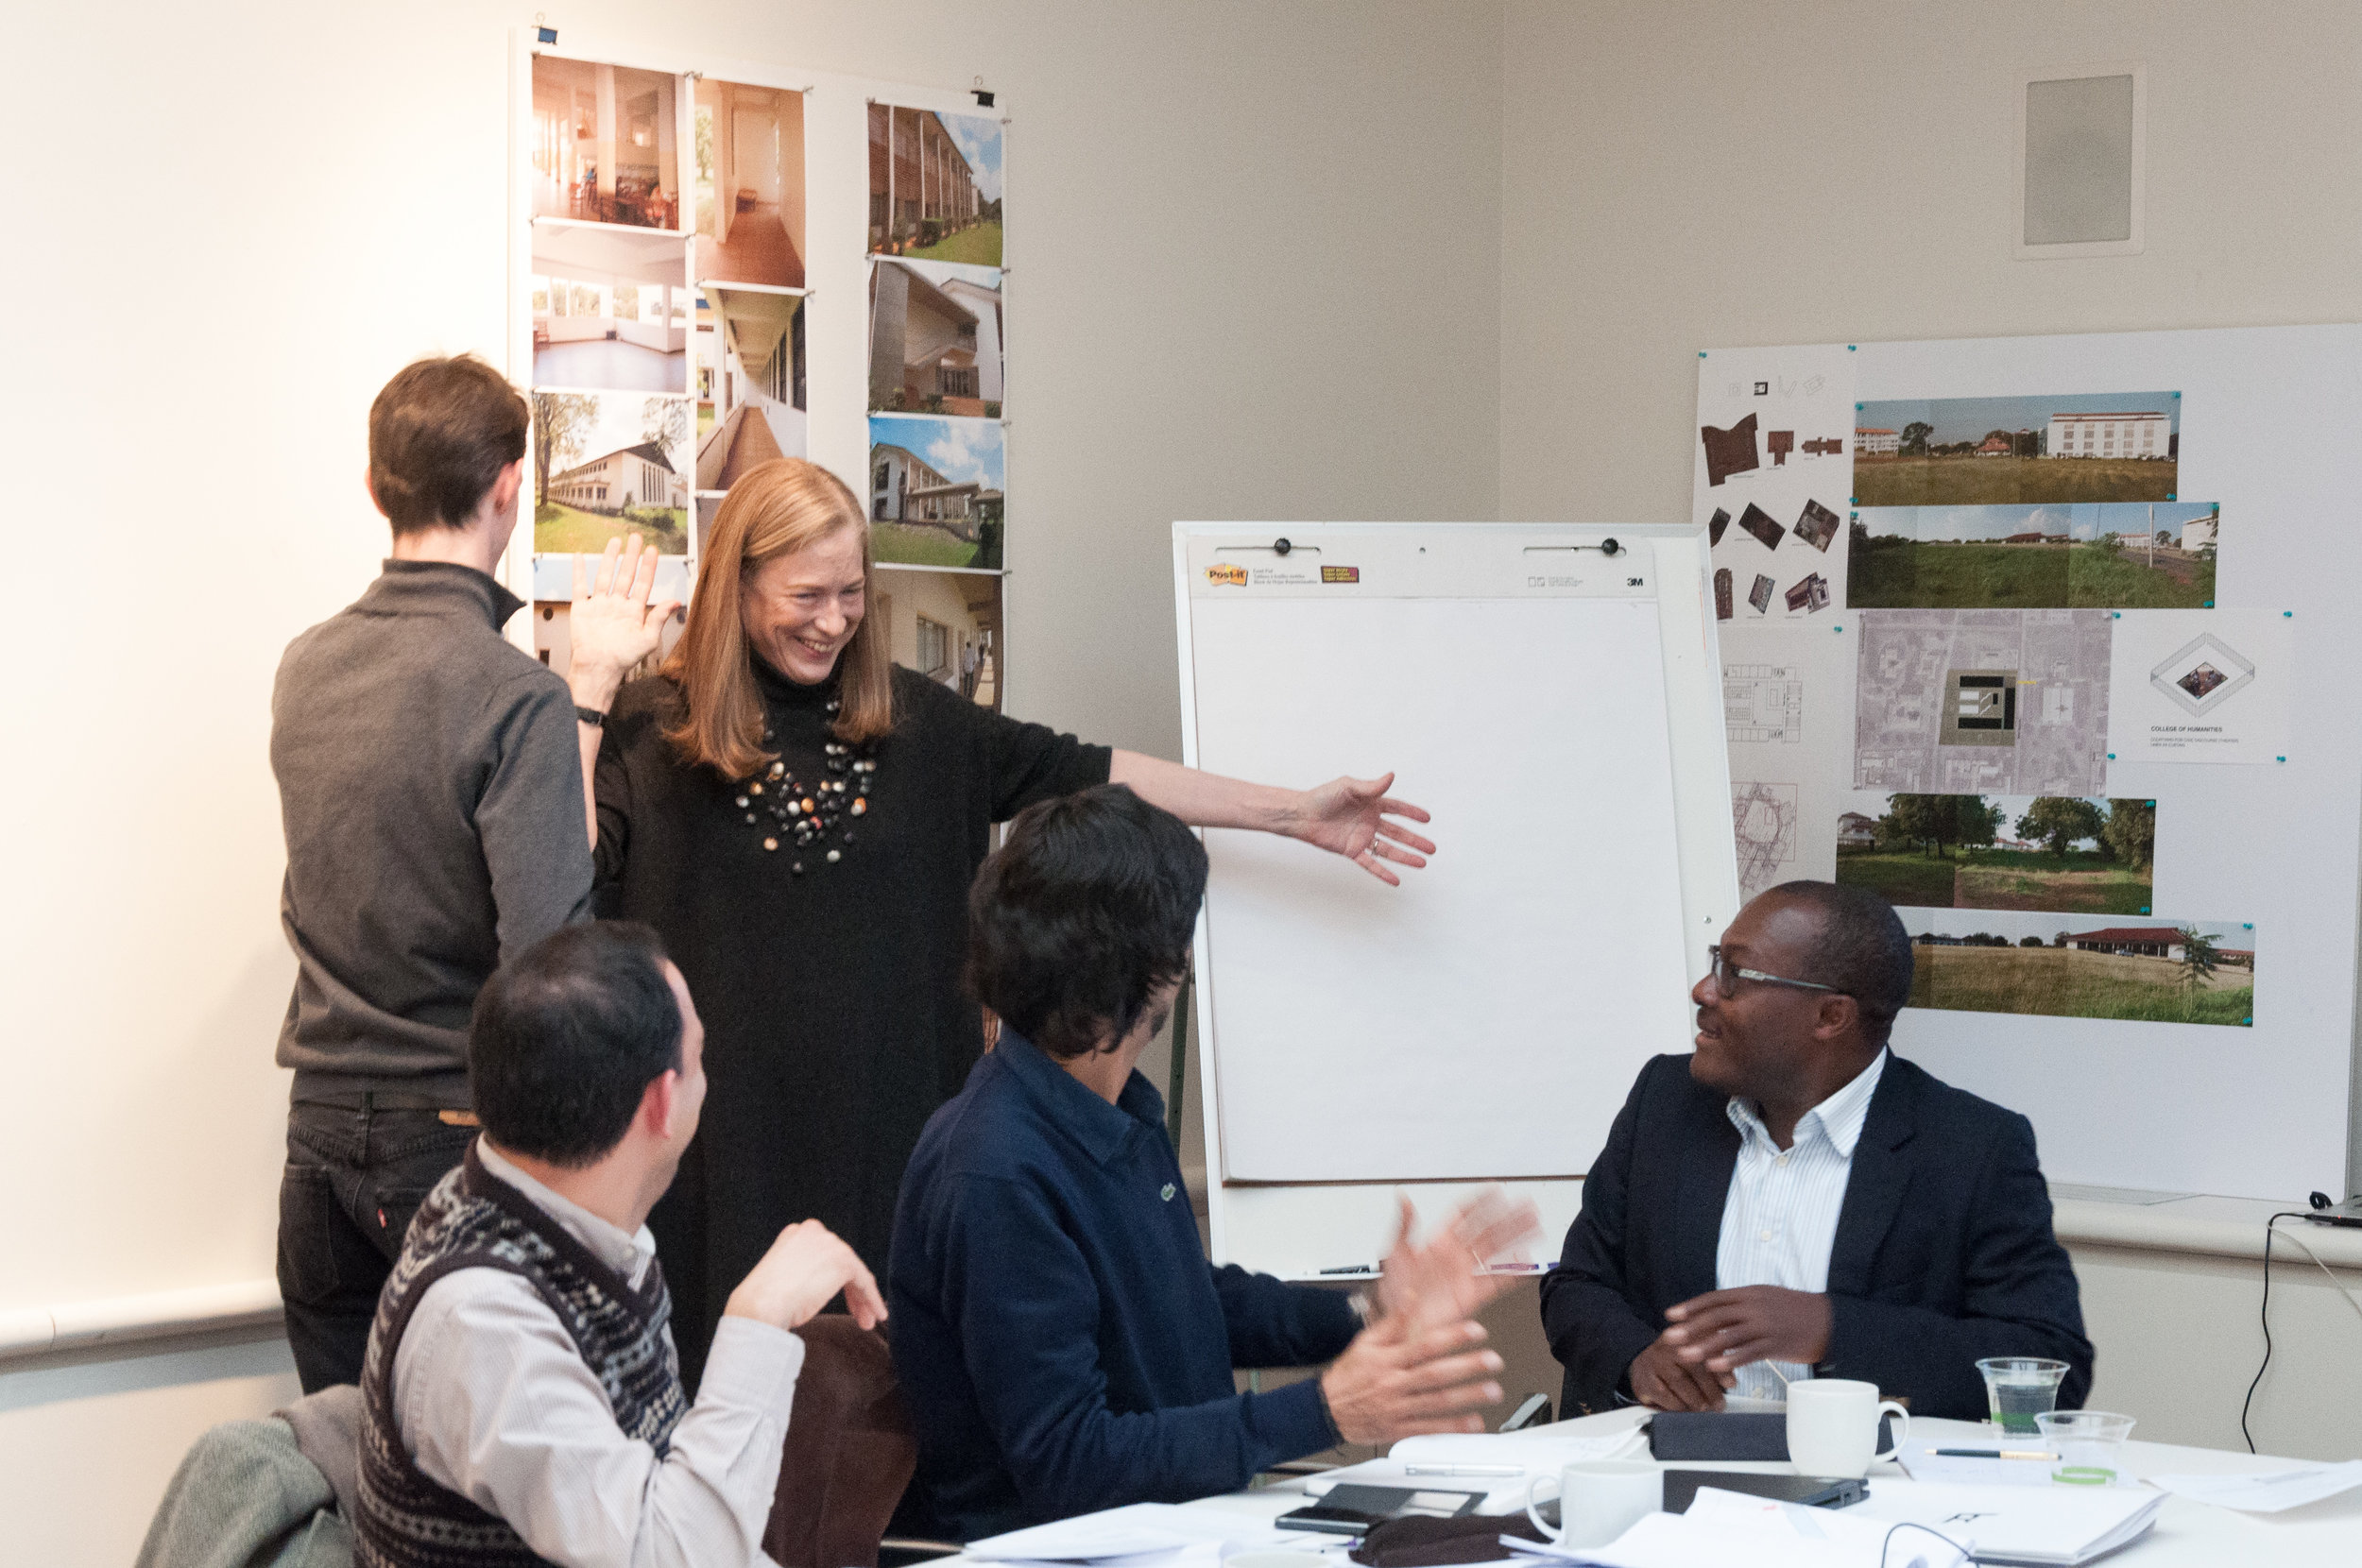 Sylvia Smith and team at a design meeting for a project in Ghana, courtesy of FXCollaborative